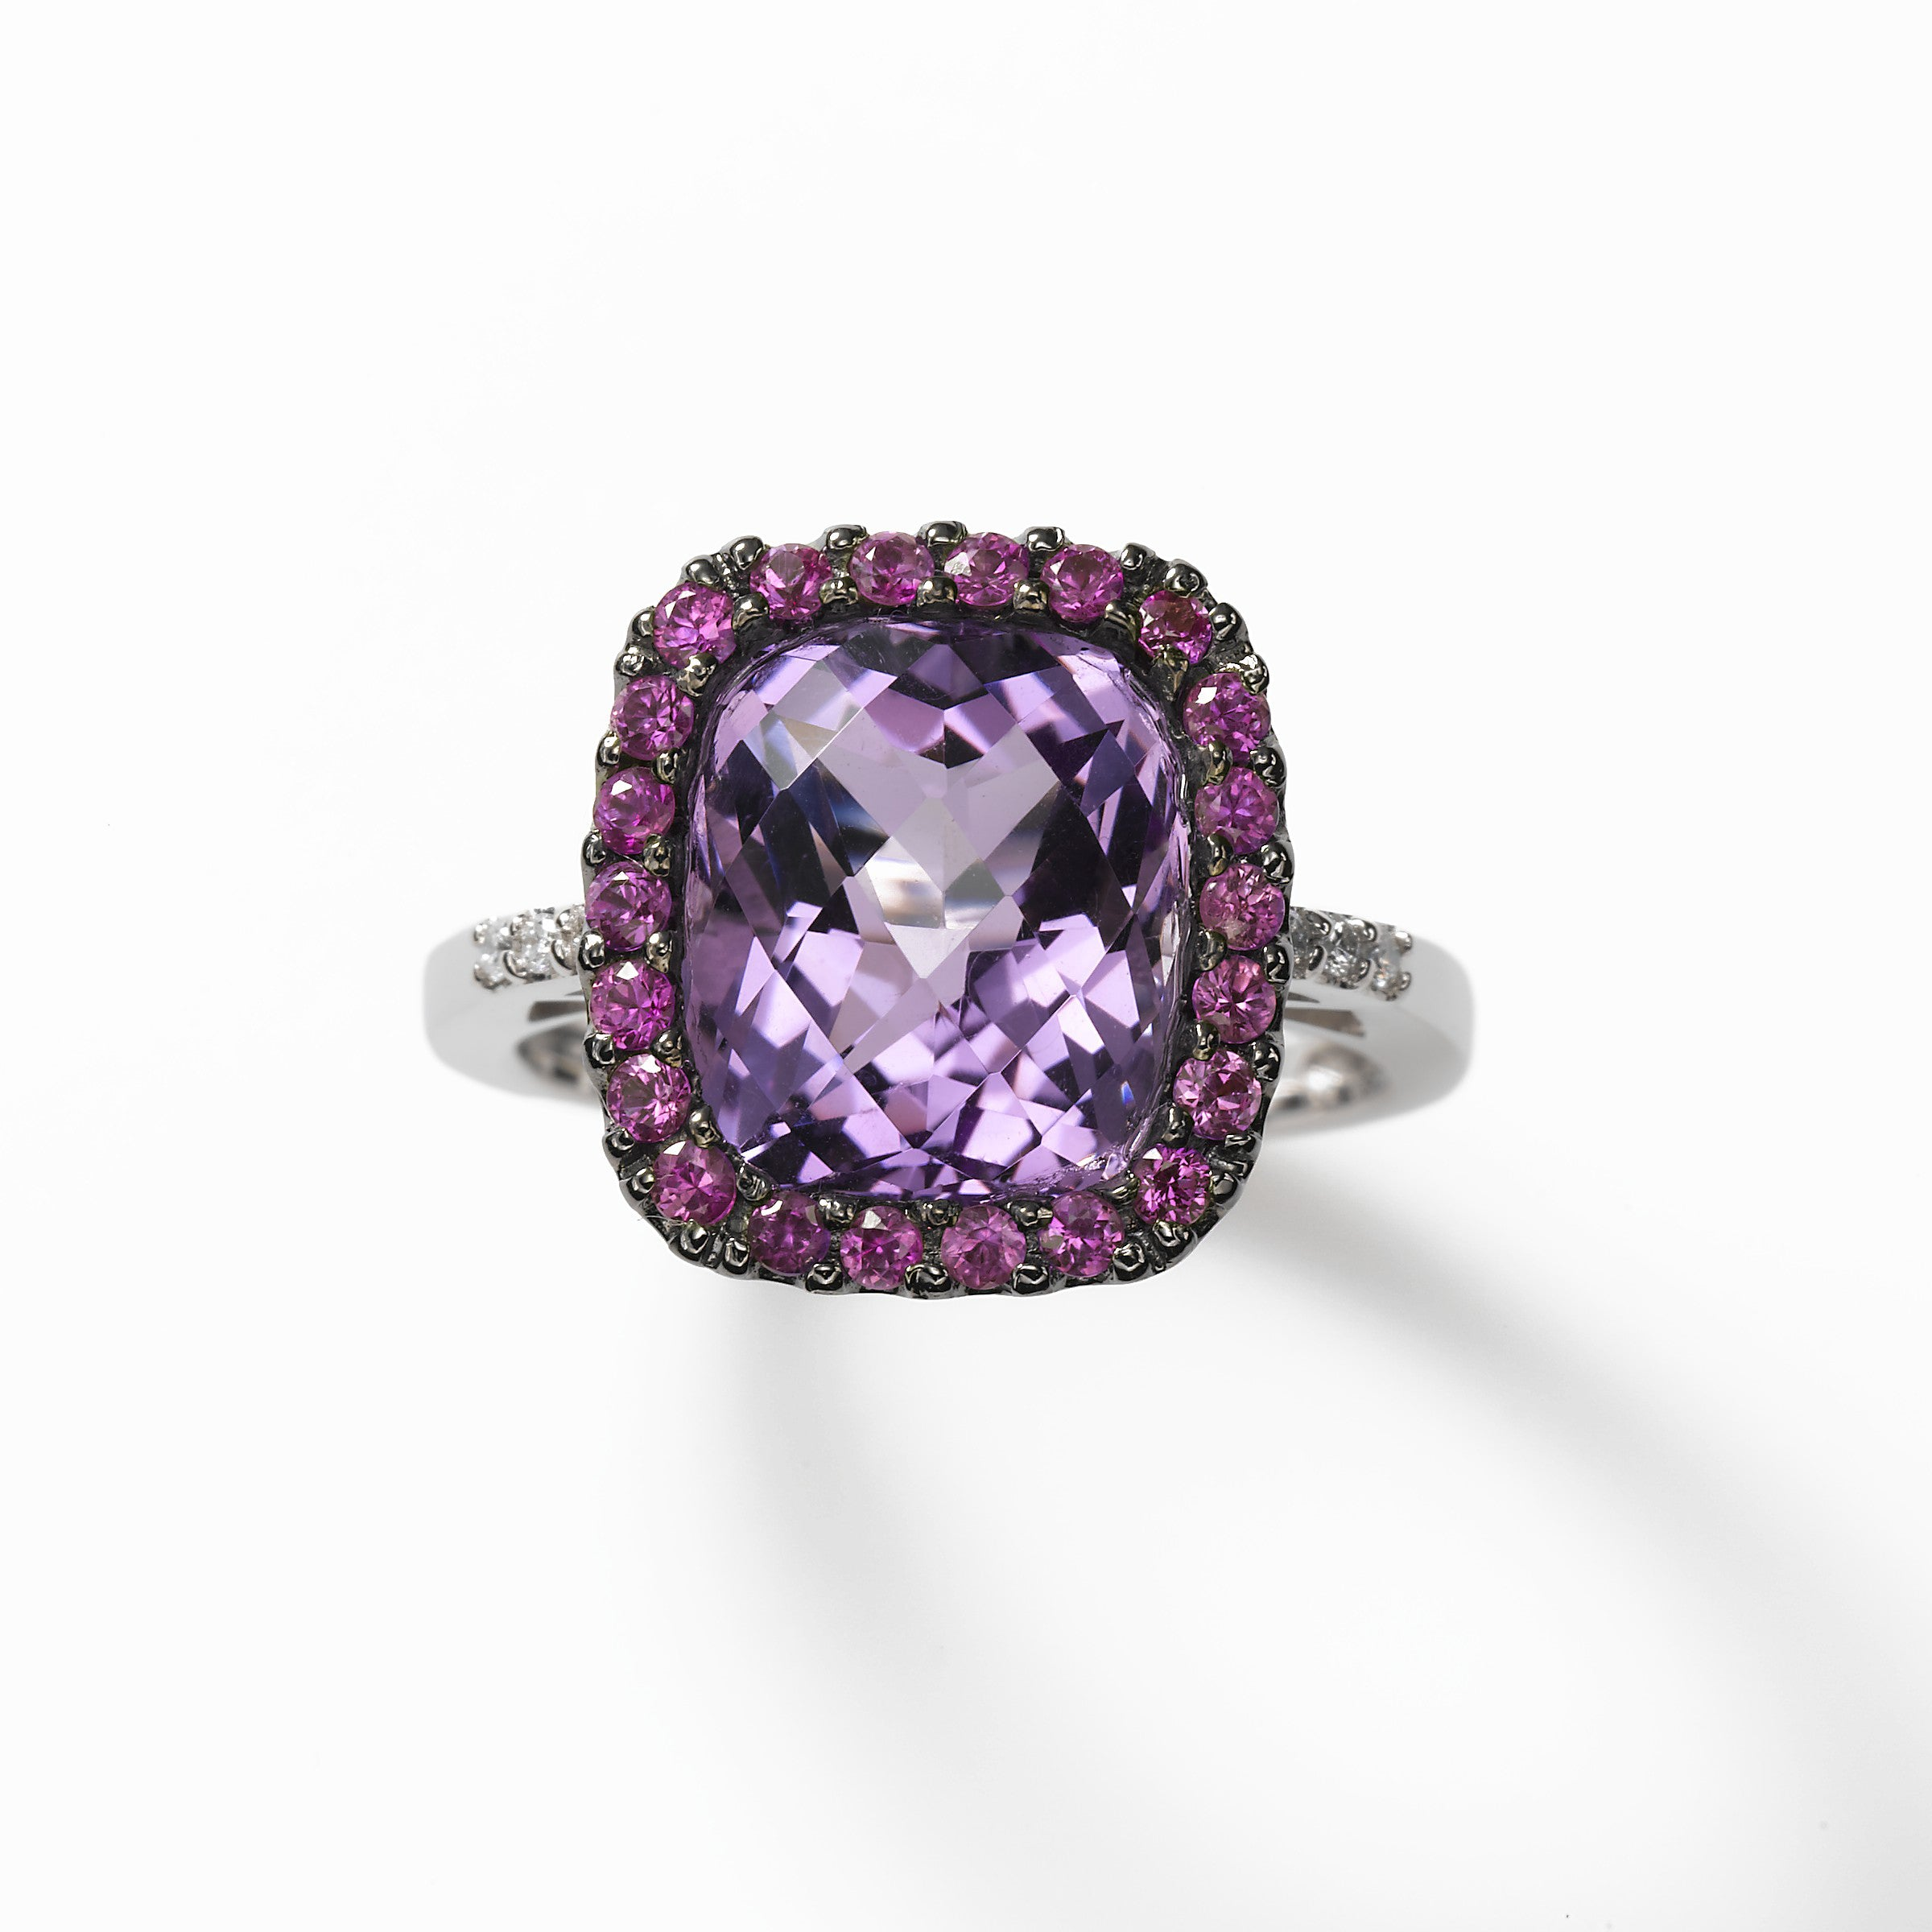 Cushion Cut Amethyst with Pink Sapphire Ring, 14K